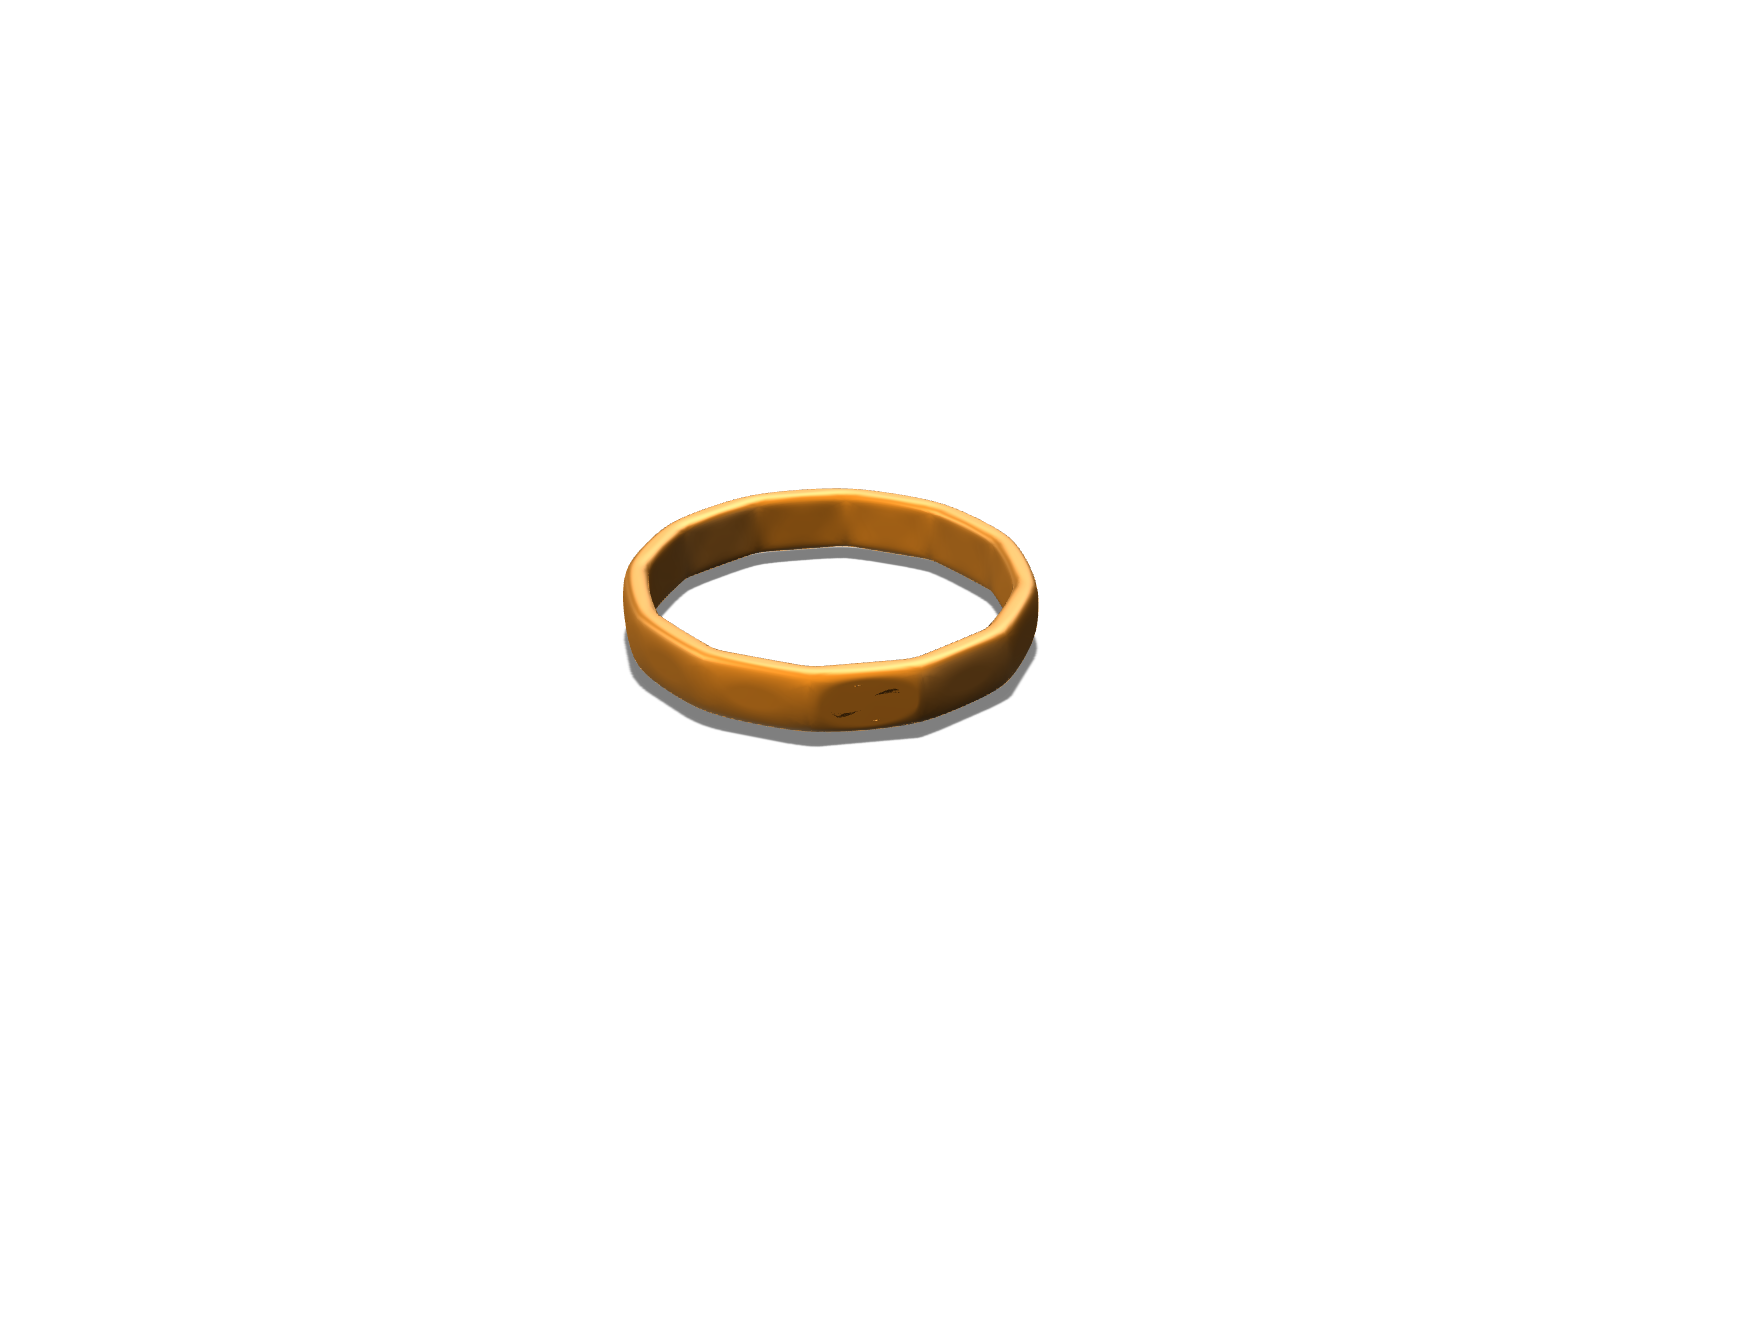 square ring - 3D design by rajatsethi7 Apr 25, 2018